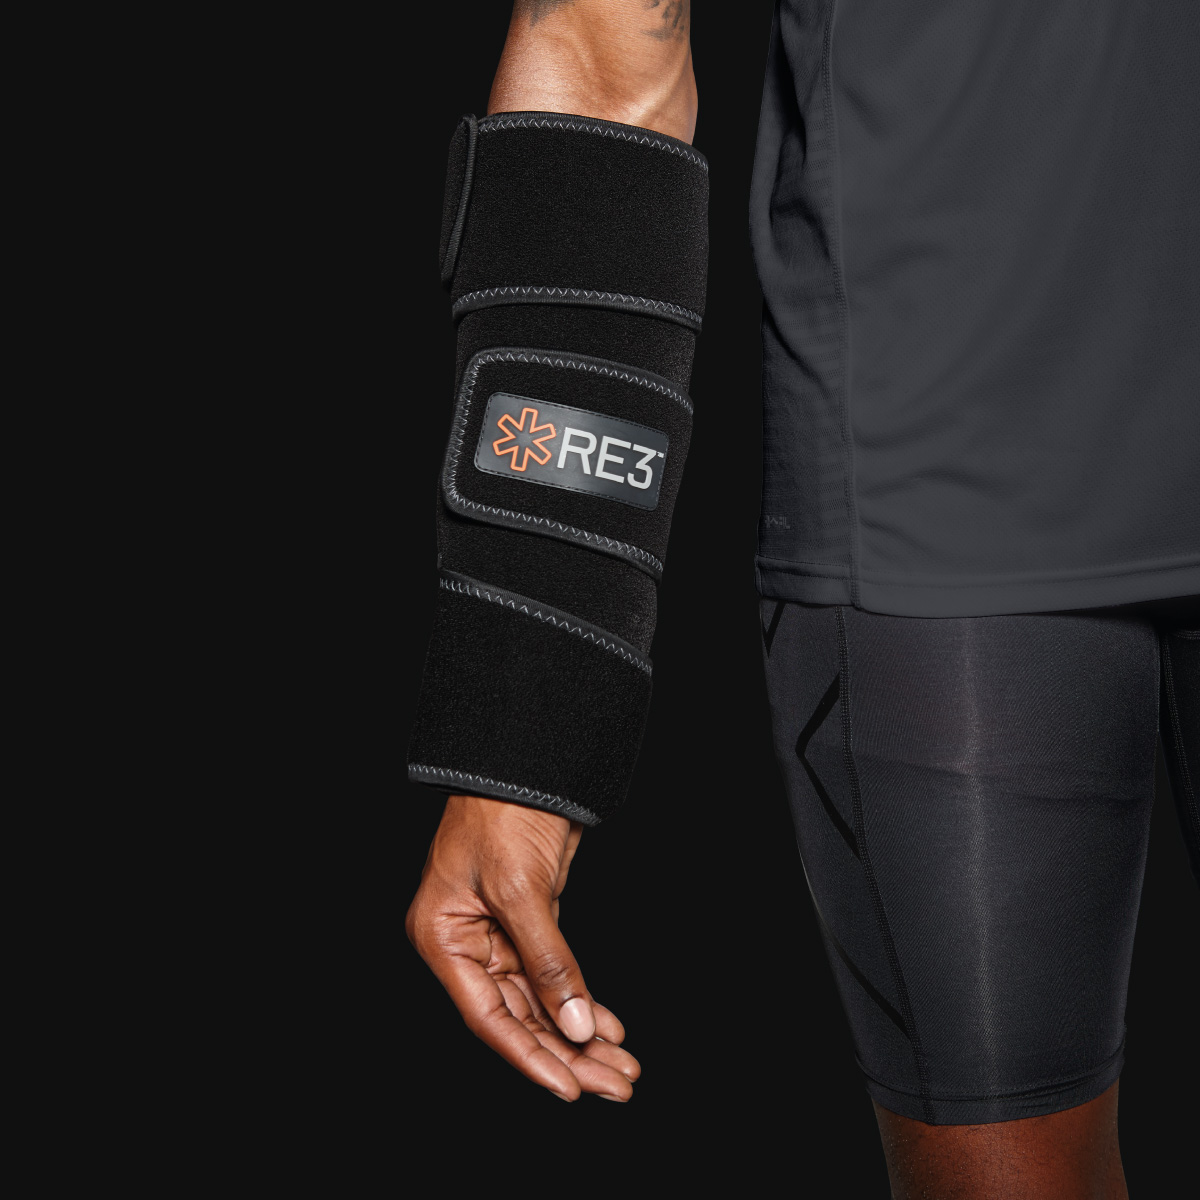 RE3 Ice Compression Pack Davidson Branding We Grow Retail Brand Identity Product Imagery Arm Brace